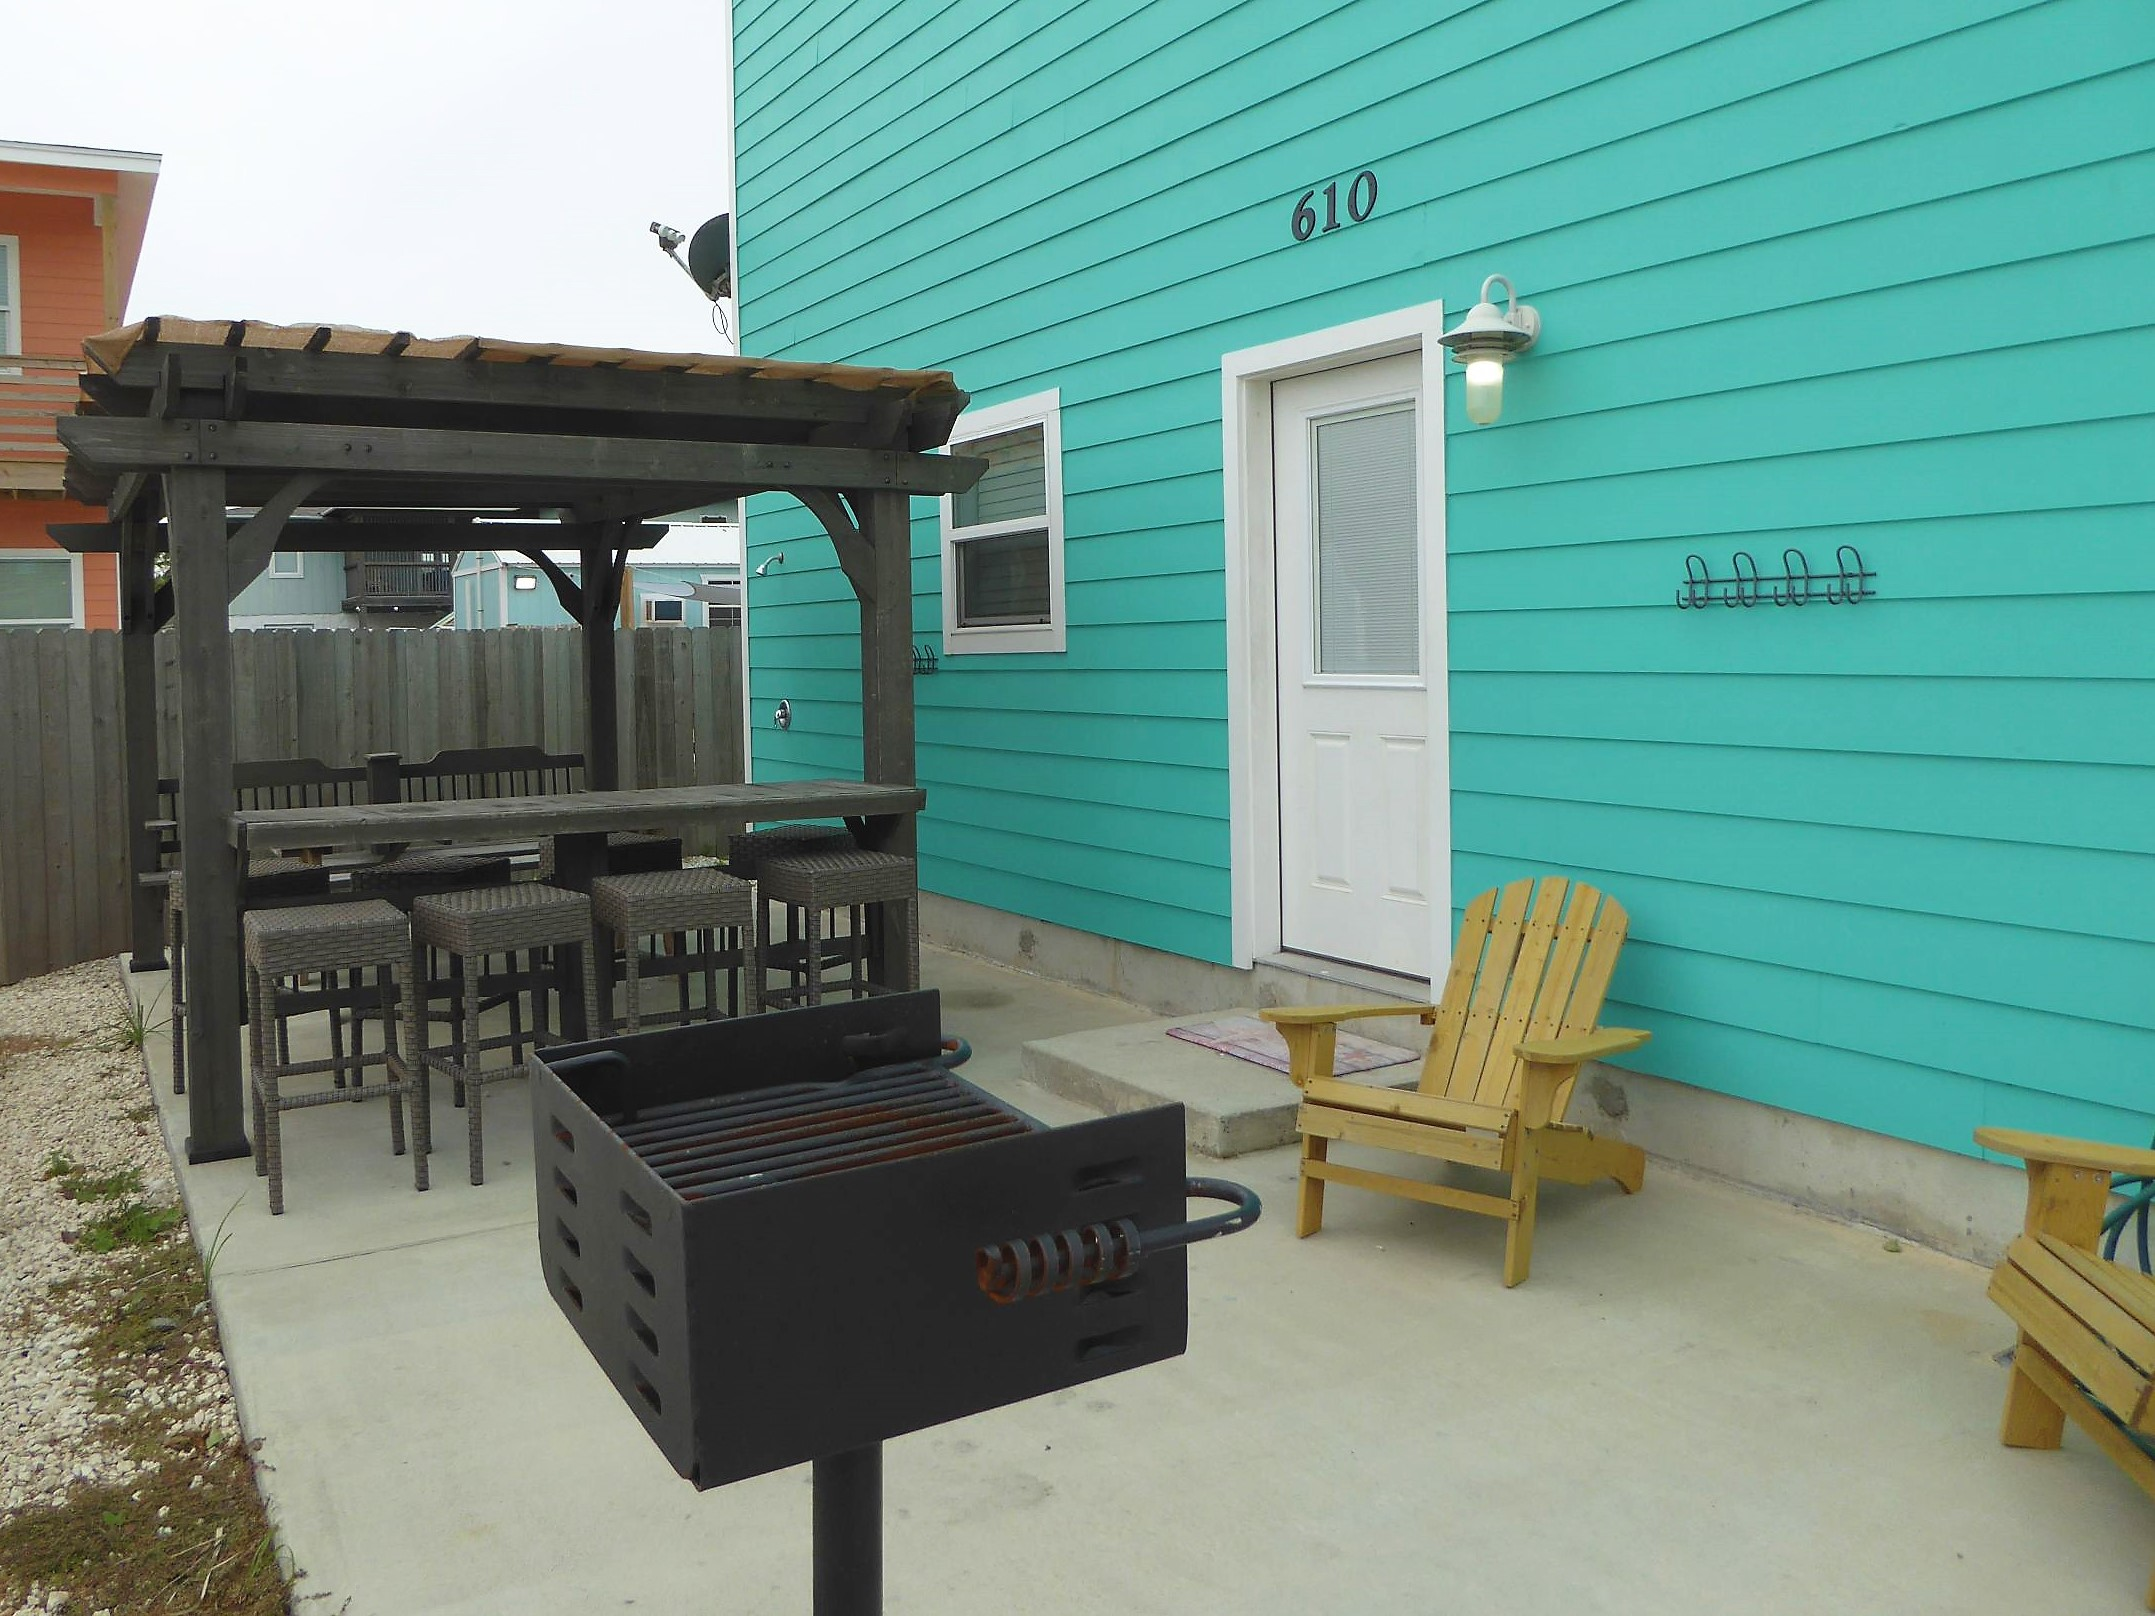 Patio dining and grill